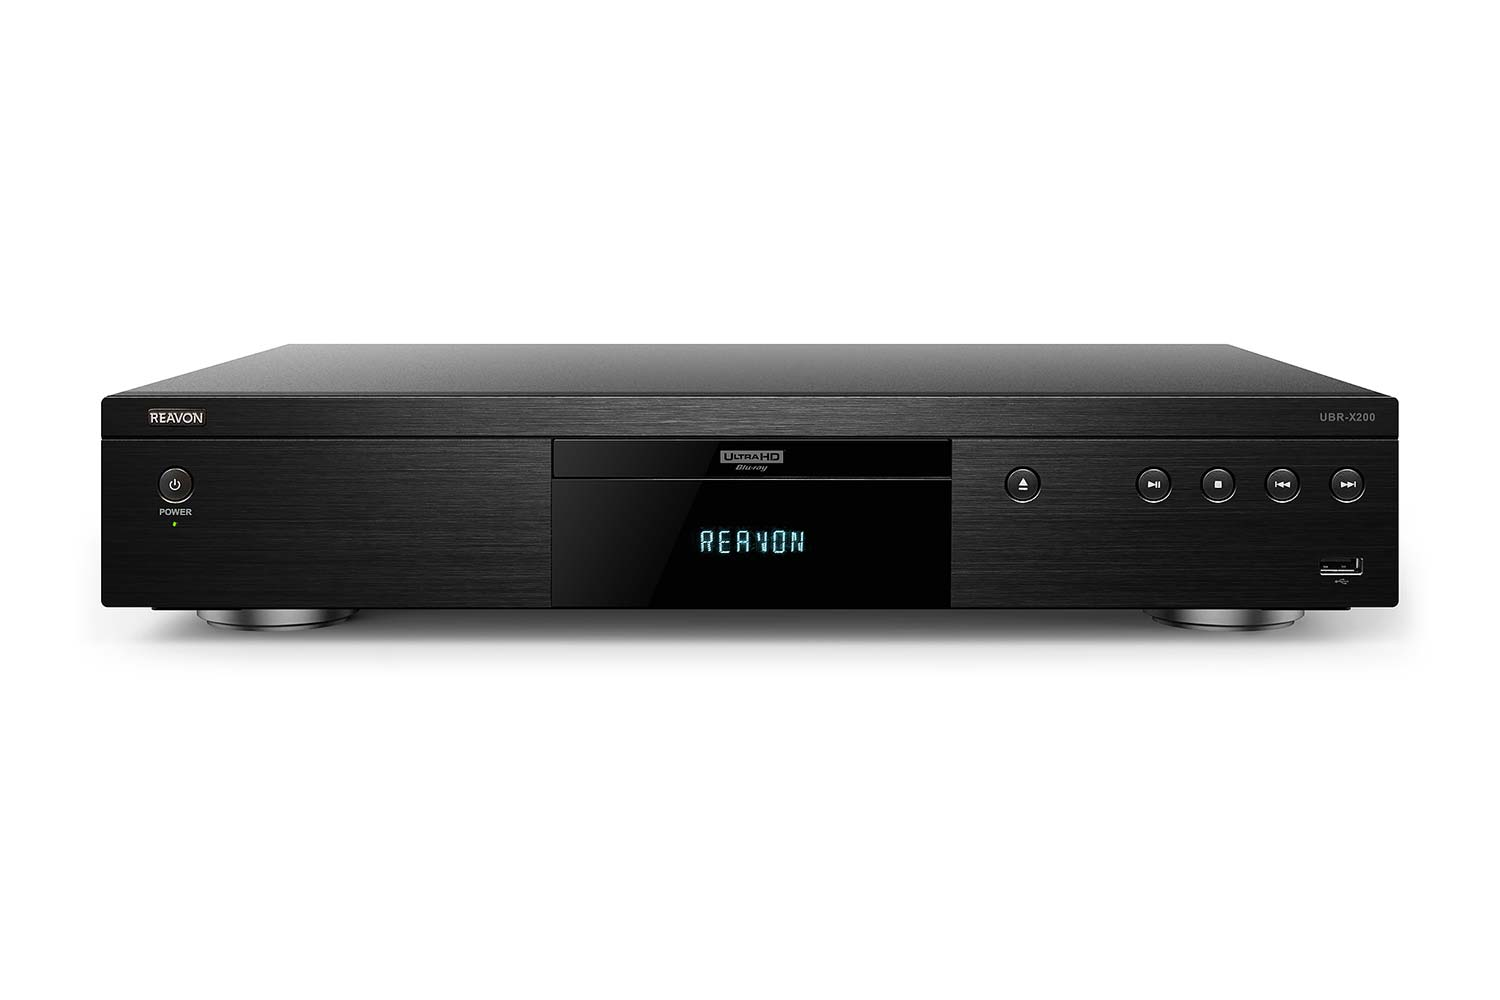 Reavon UBR-X200 4K Blu-Ray Player front